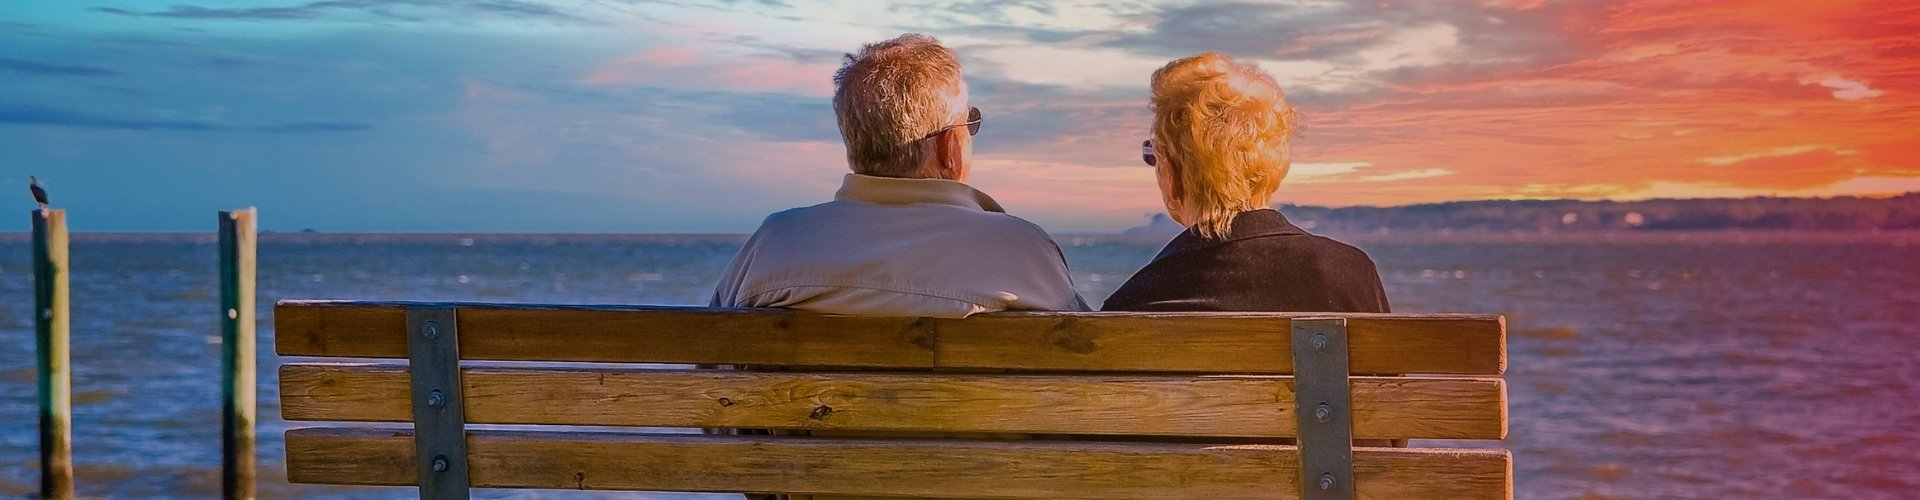 using a deferred compensation plan to plan for retirement